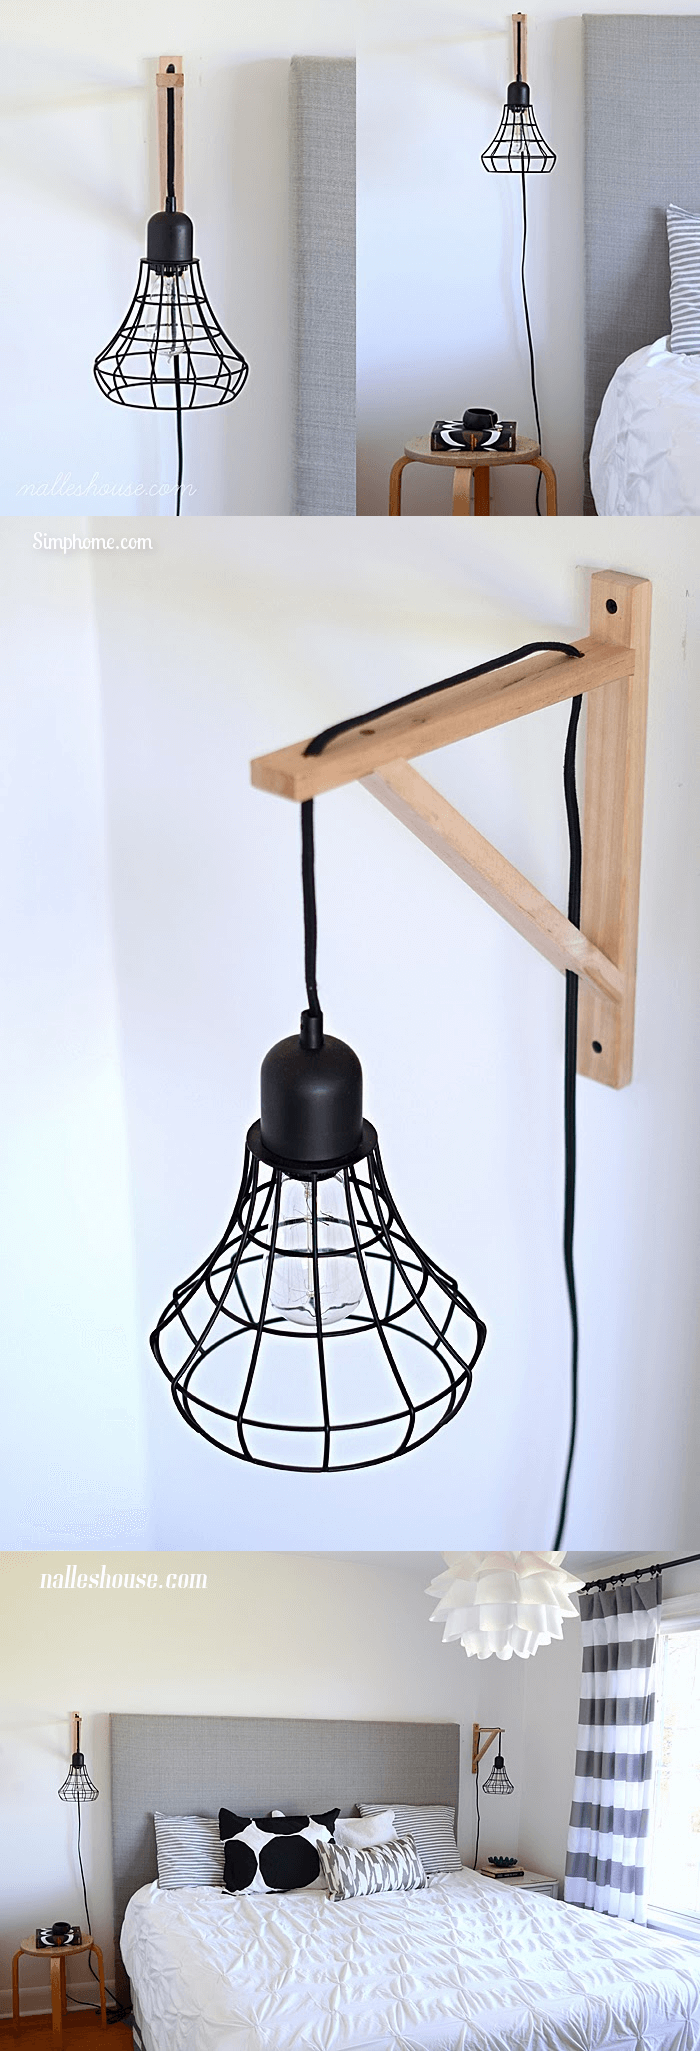 DIY Cage Light Sconces 14 Simphome com p